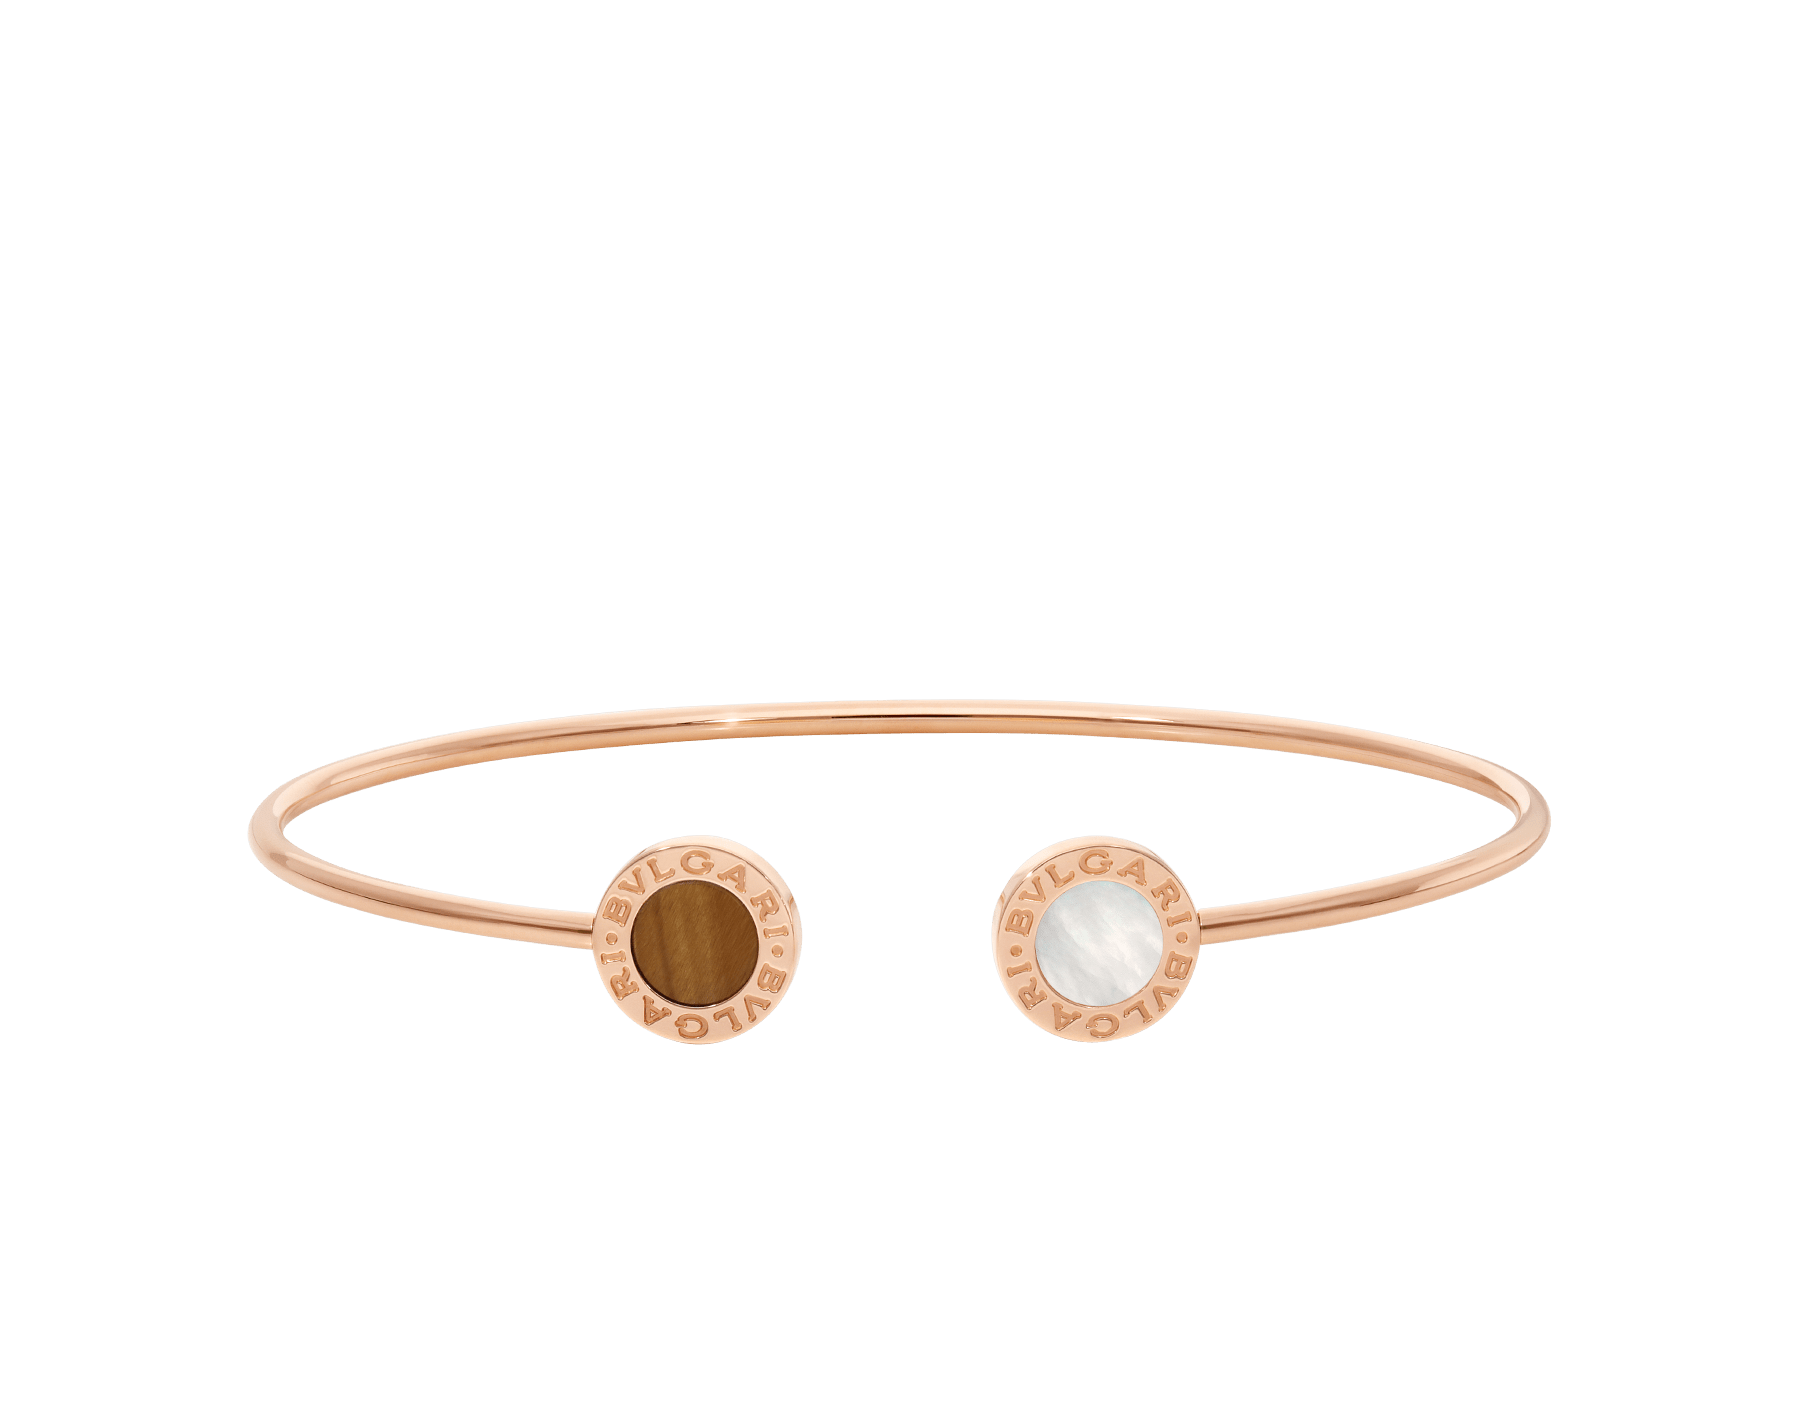 BVLGARI BVLGARI 18 kt rose gold bracelet set with mother-of-pearl and tiger's eye elements BR858623 image 2